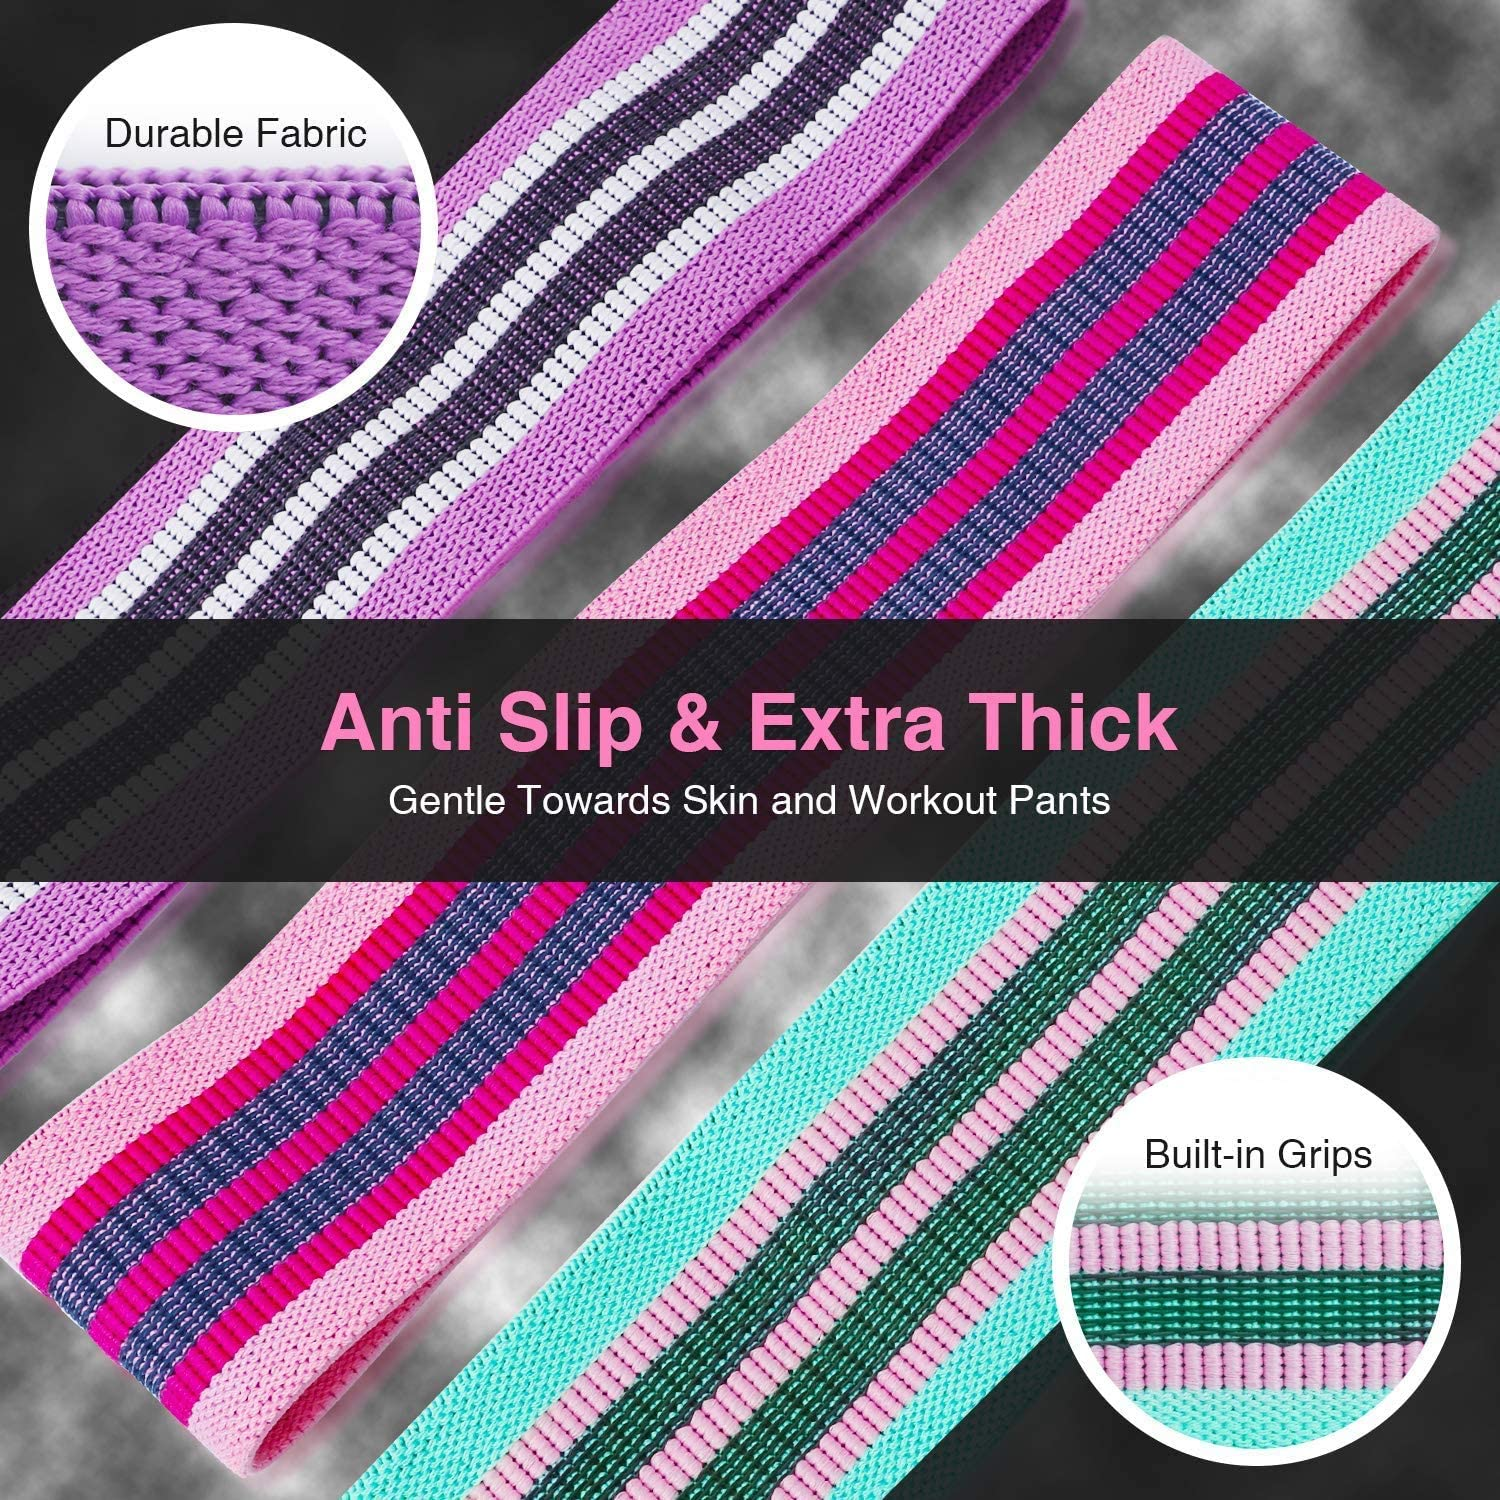 Glutes and Thighs Workout Legs Voniry Resistance Bands Fabric,Booty Exercise Bands Non Slip Hip Elastic Bands for Hip Thick Wide Fitness Loop Circle Resistance Bands for Men /& Women Set of 3 pack Butt